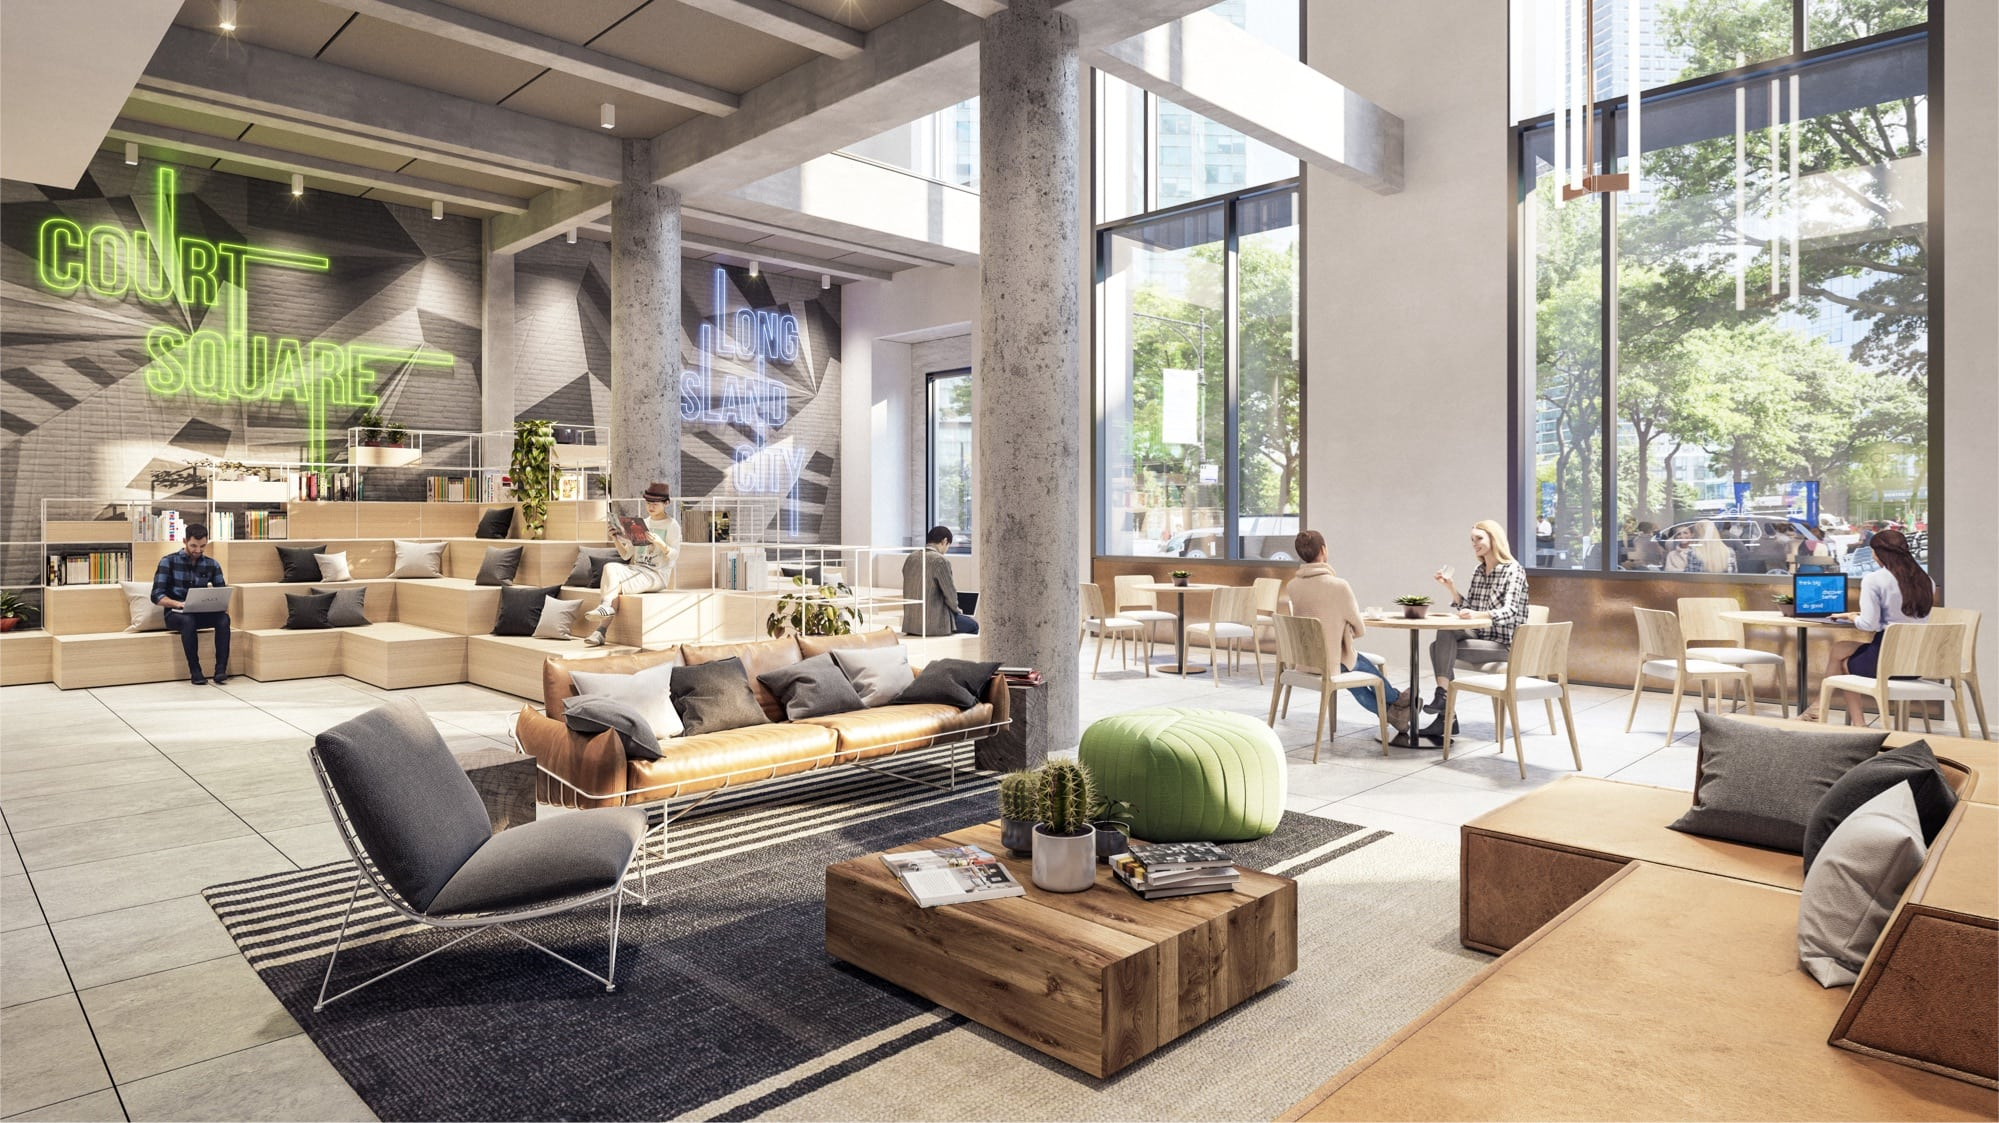 Naturally lit ground floor common area with tenants enjoying multiple seating options